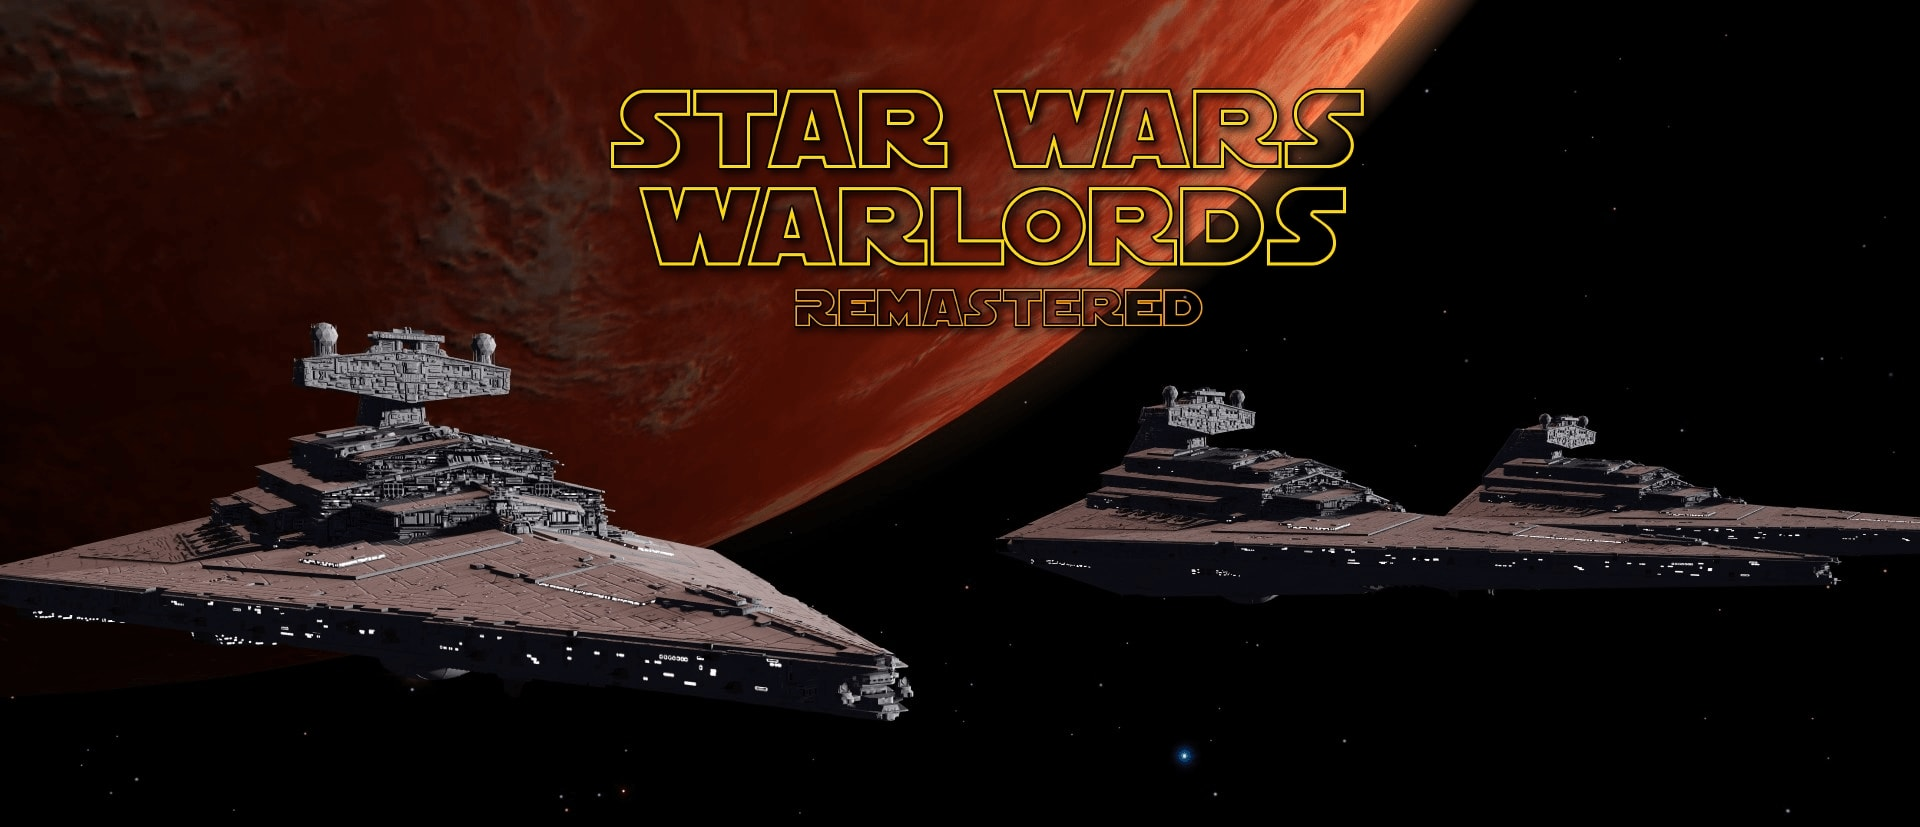 Star Wars Warlords The Aftermath Of The Clone Wars Ooc Sci Fi